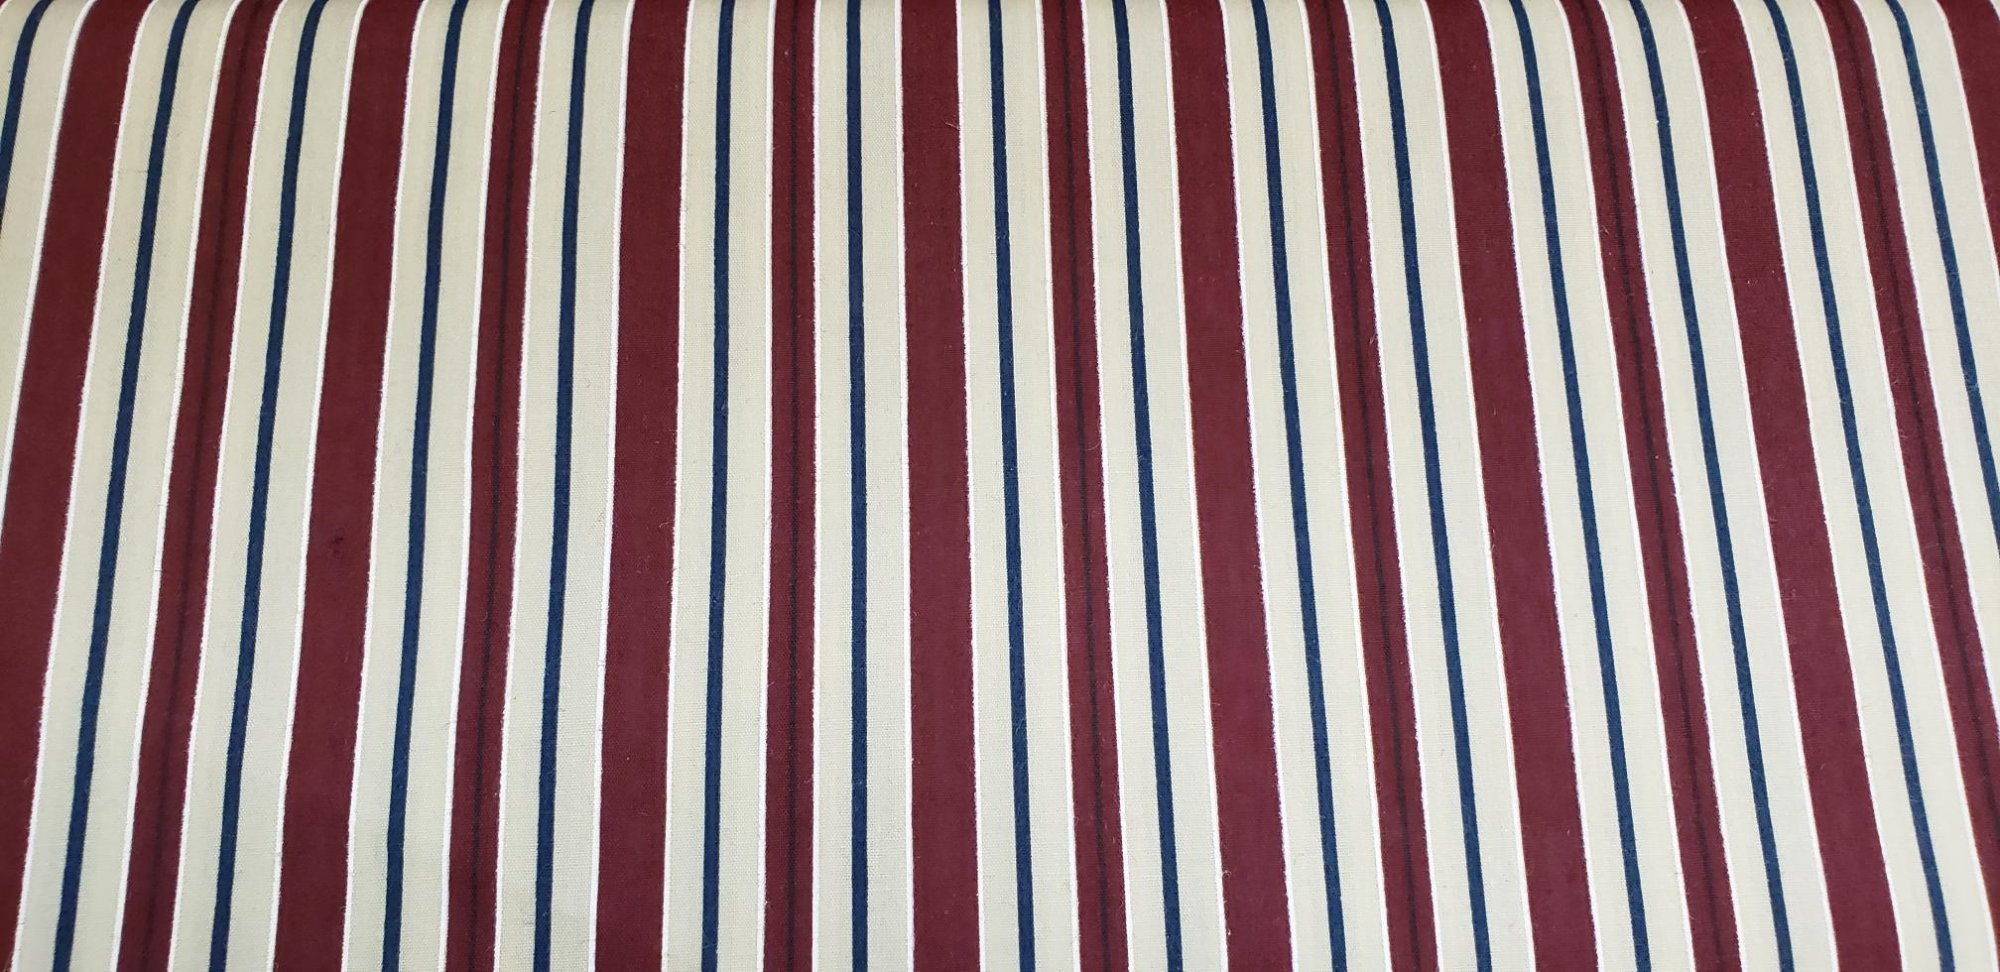 Fabric Burgundy, Beige and Navy Blue Stripes